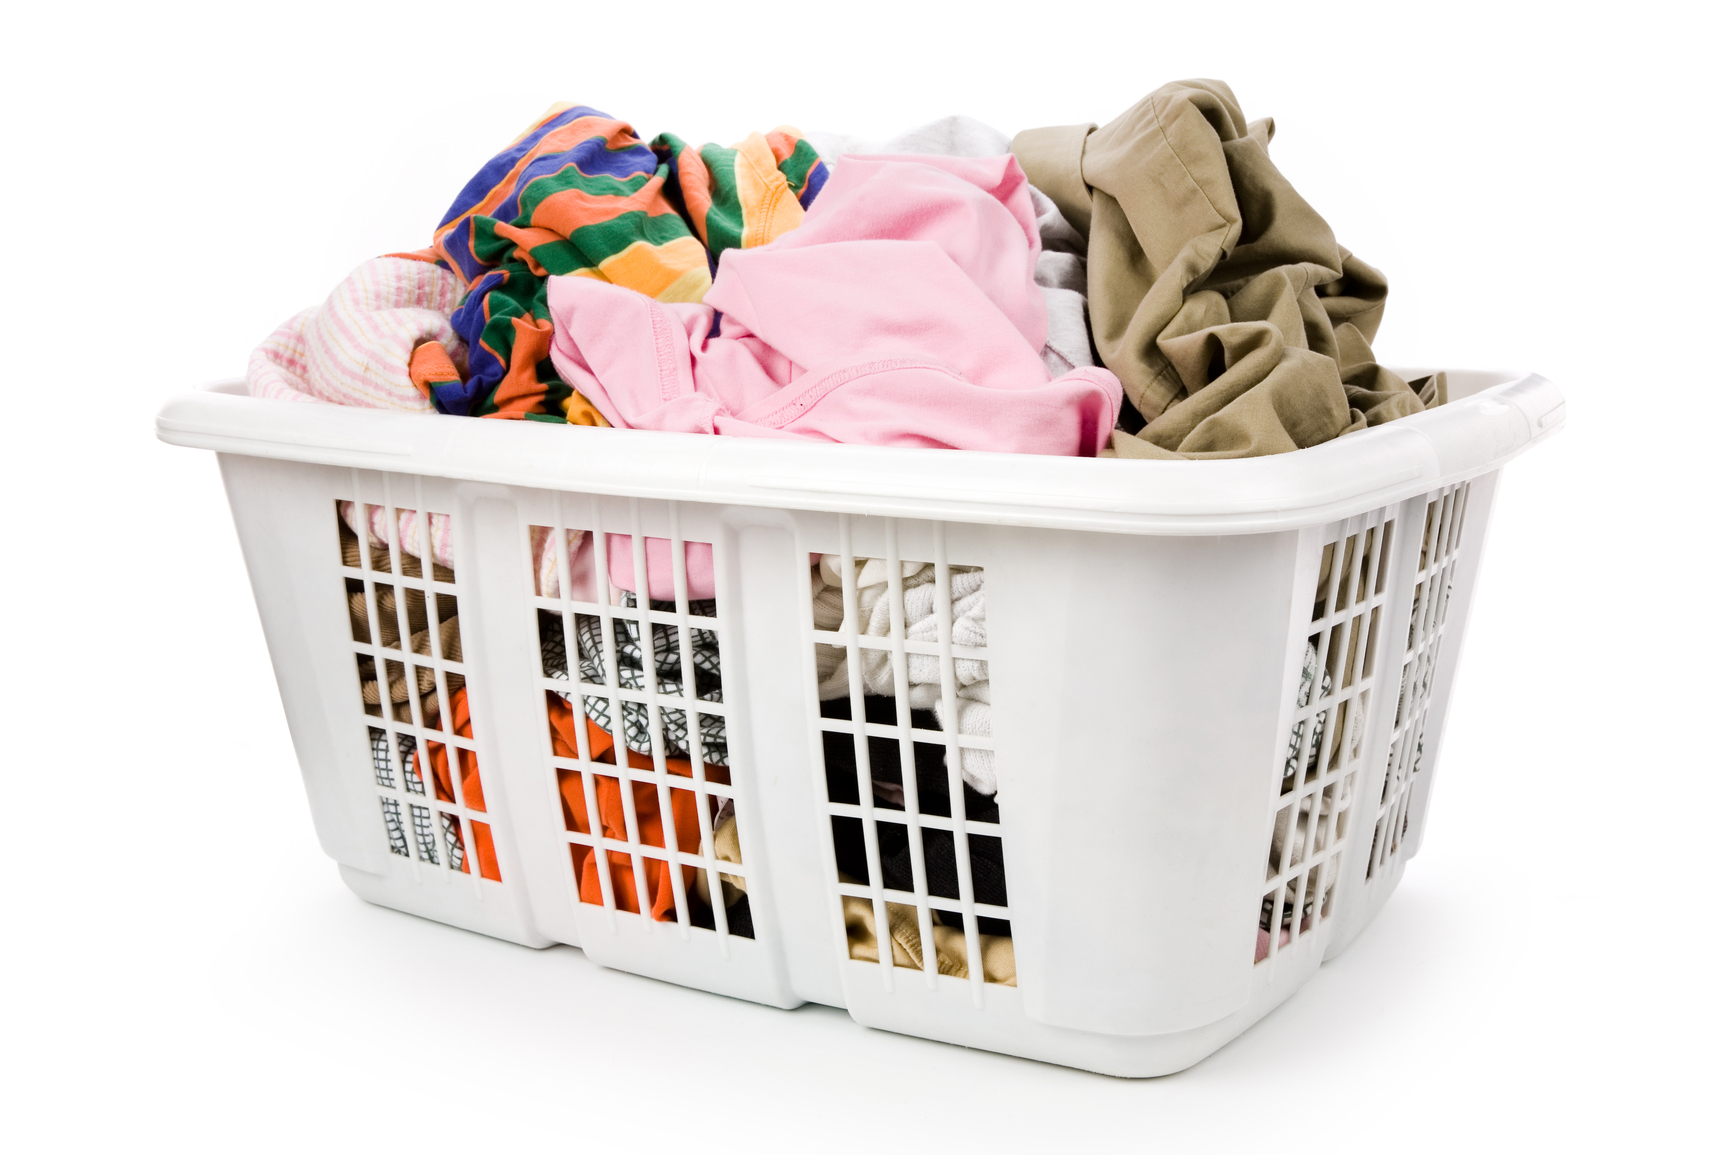 Dirty Laundry Baskets Using A Laundry Pickup And Delivery Service